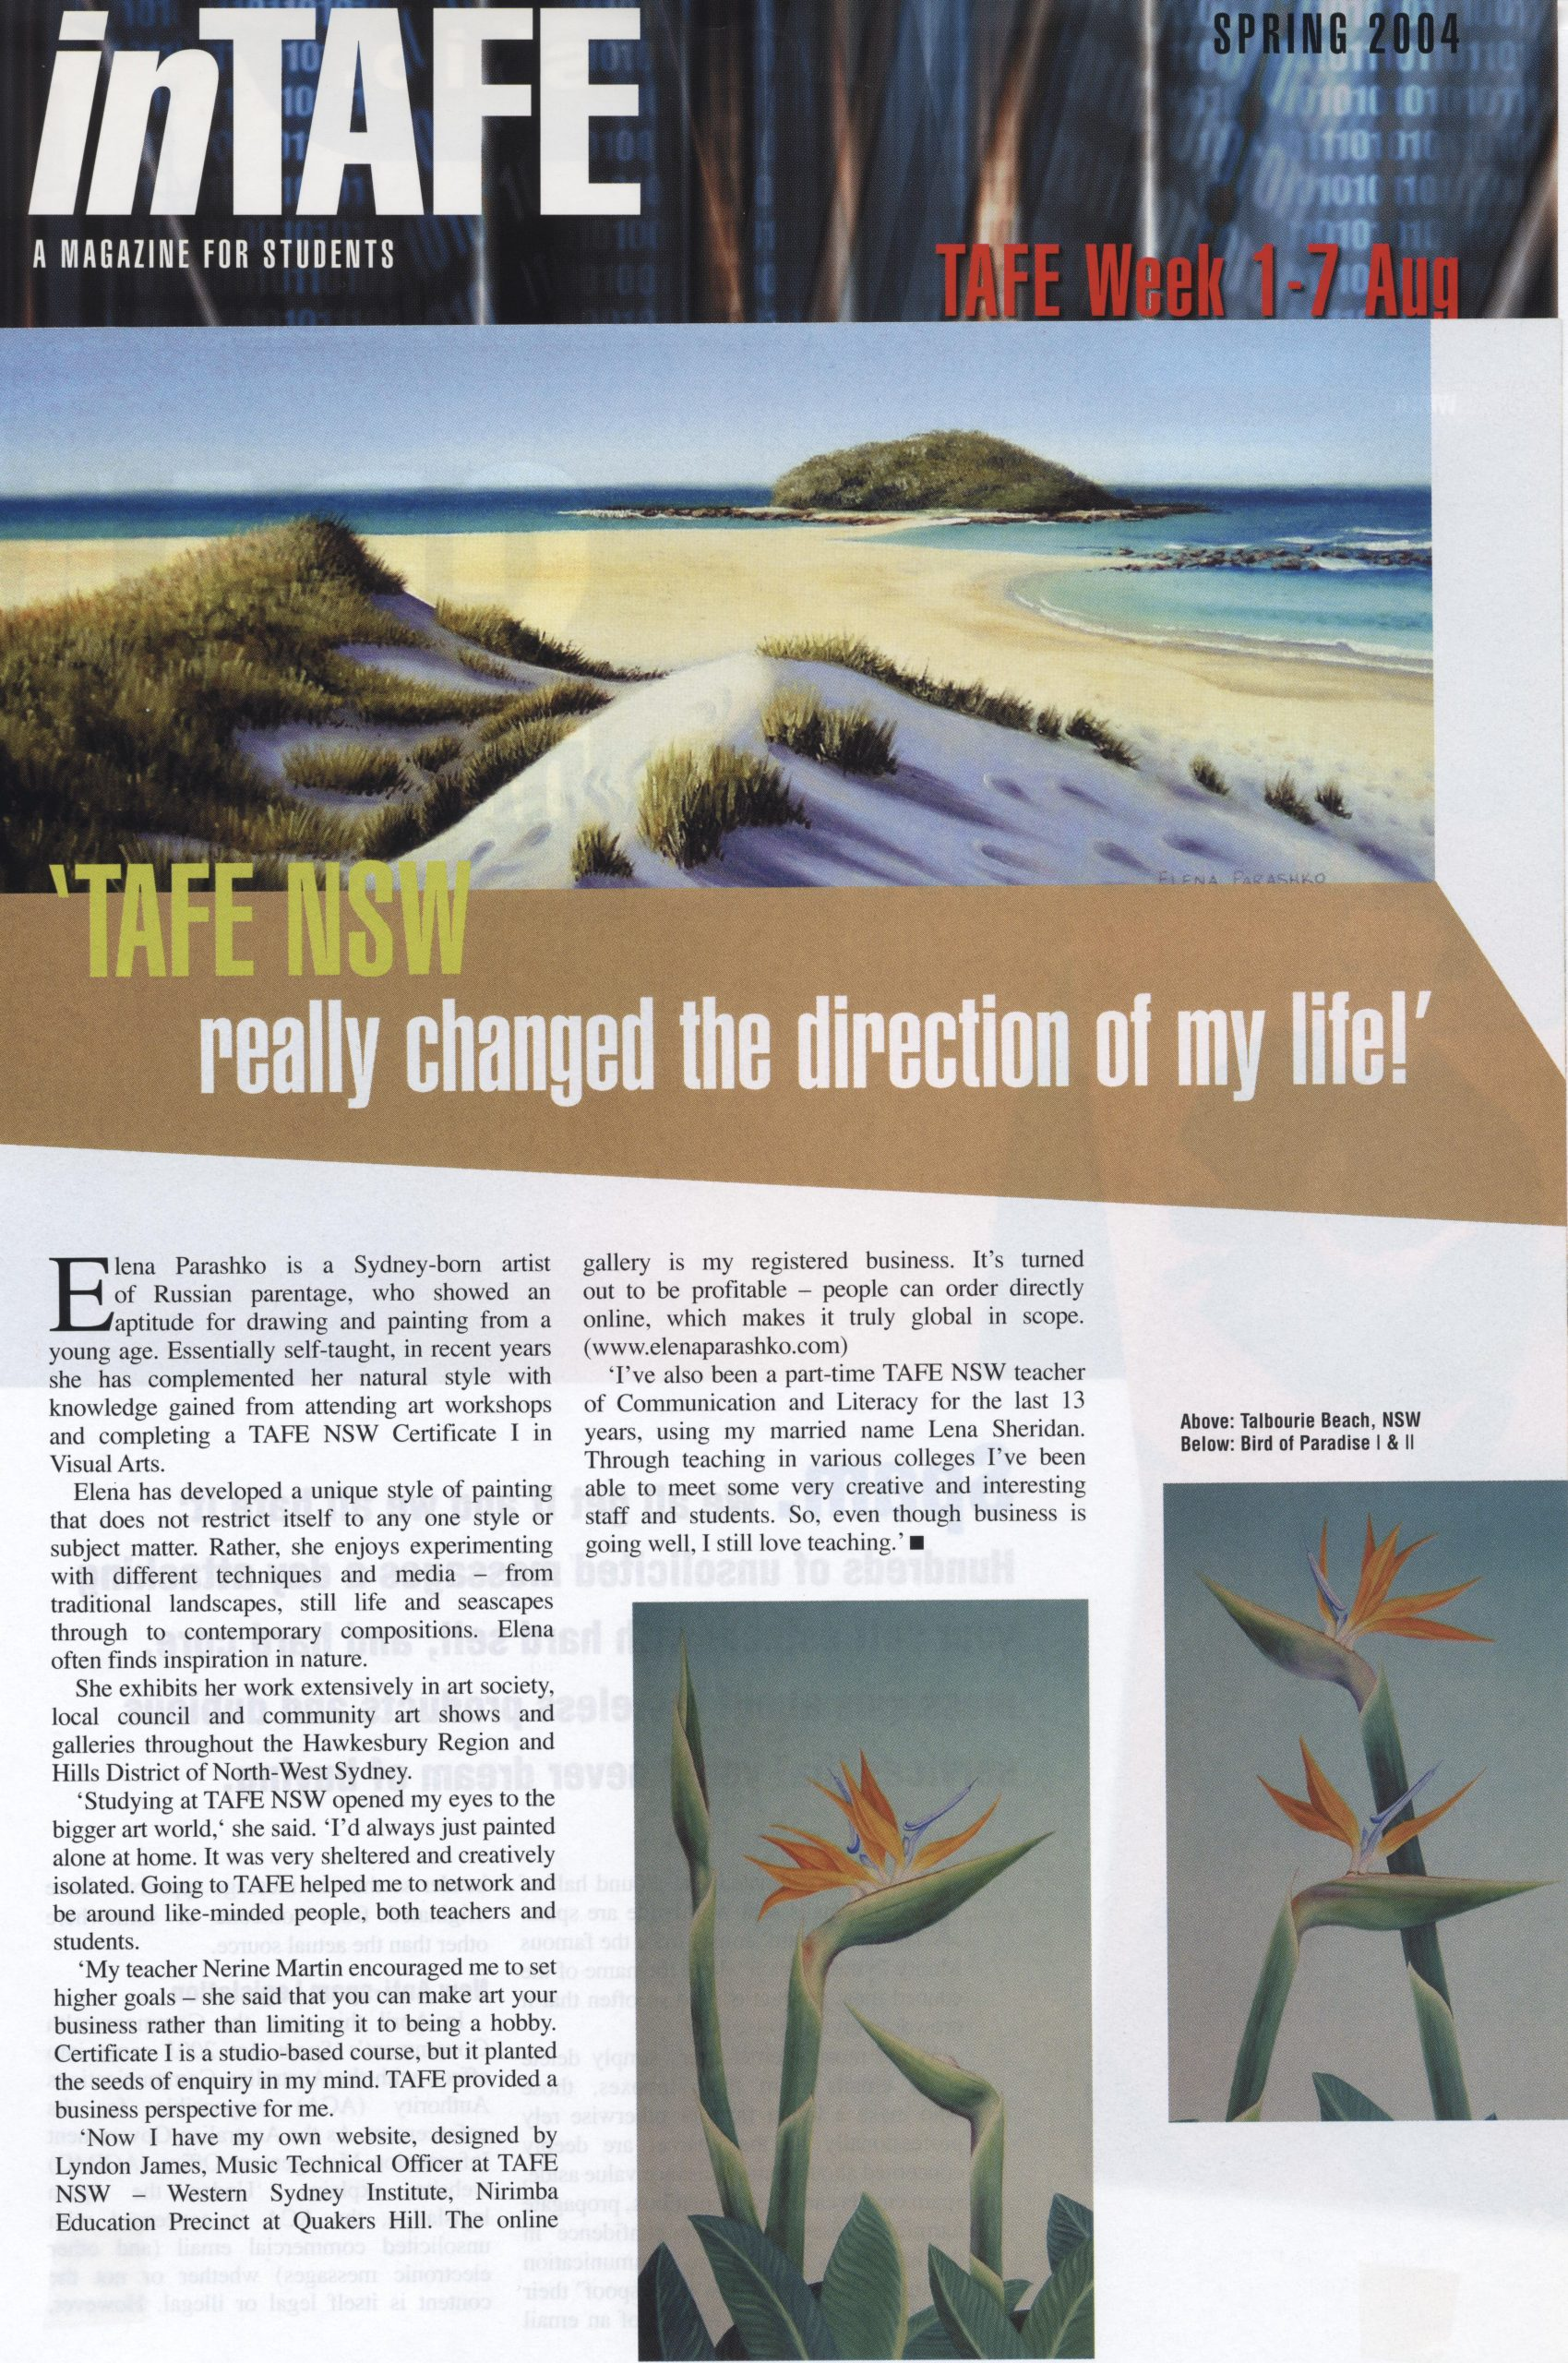 In Tafe magazine